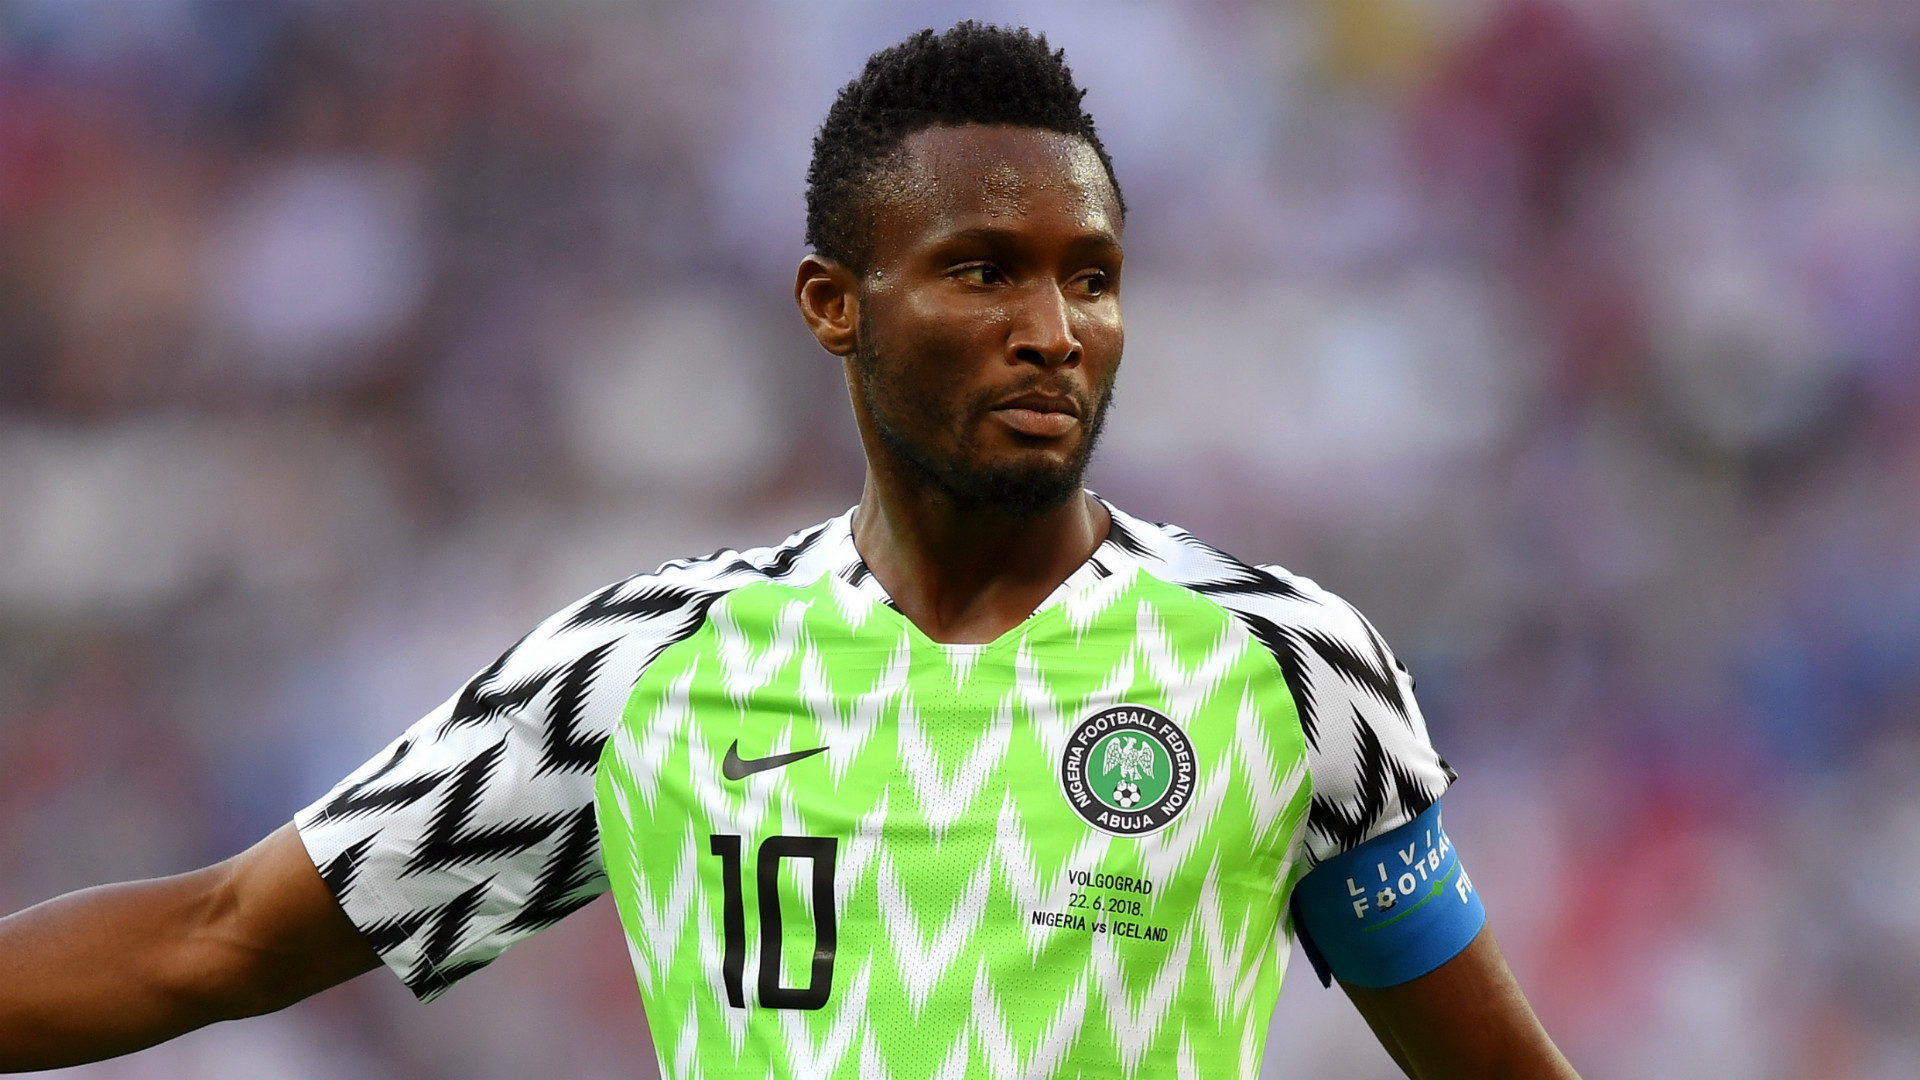 How Nigerians Reacted After FG Unveiled Mikel Obi As Youth Ambassador